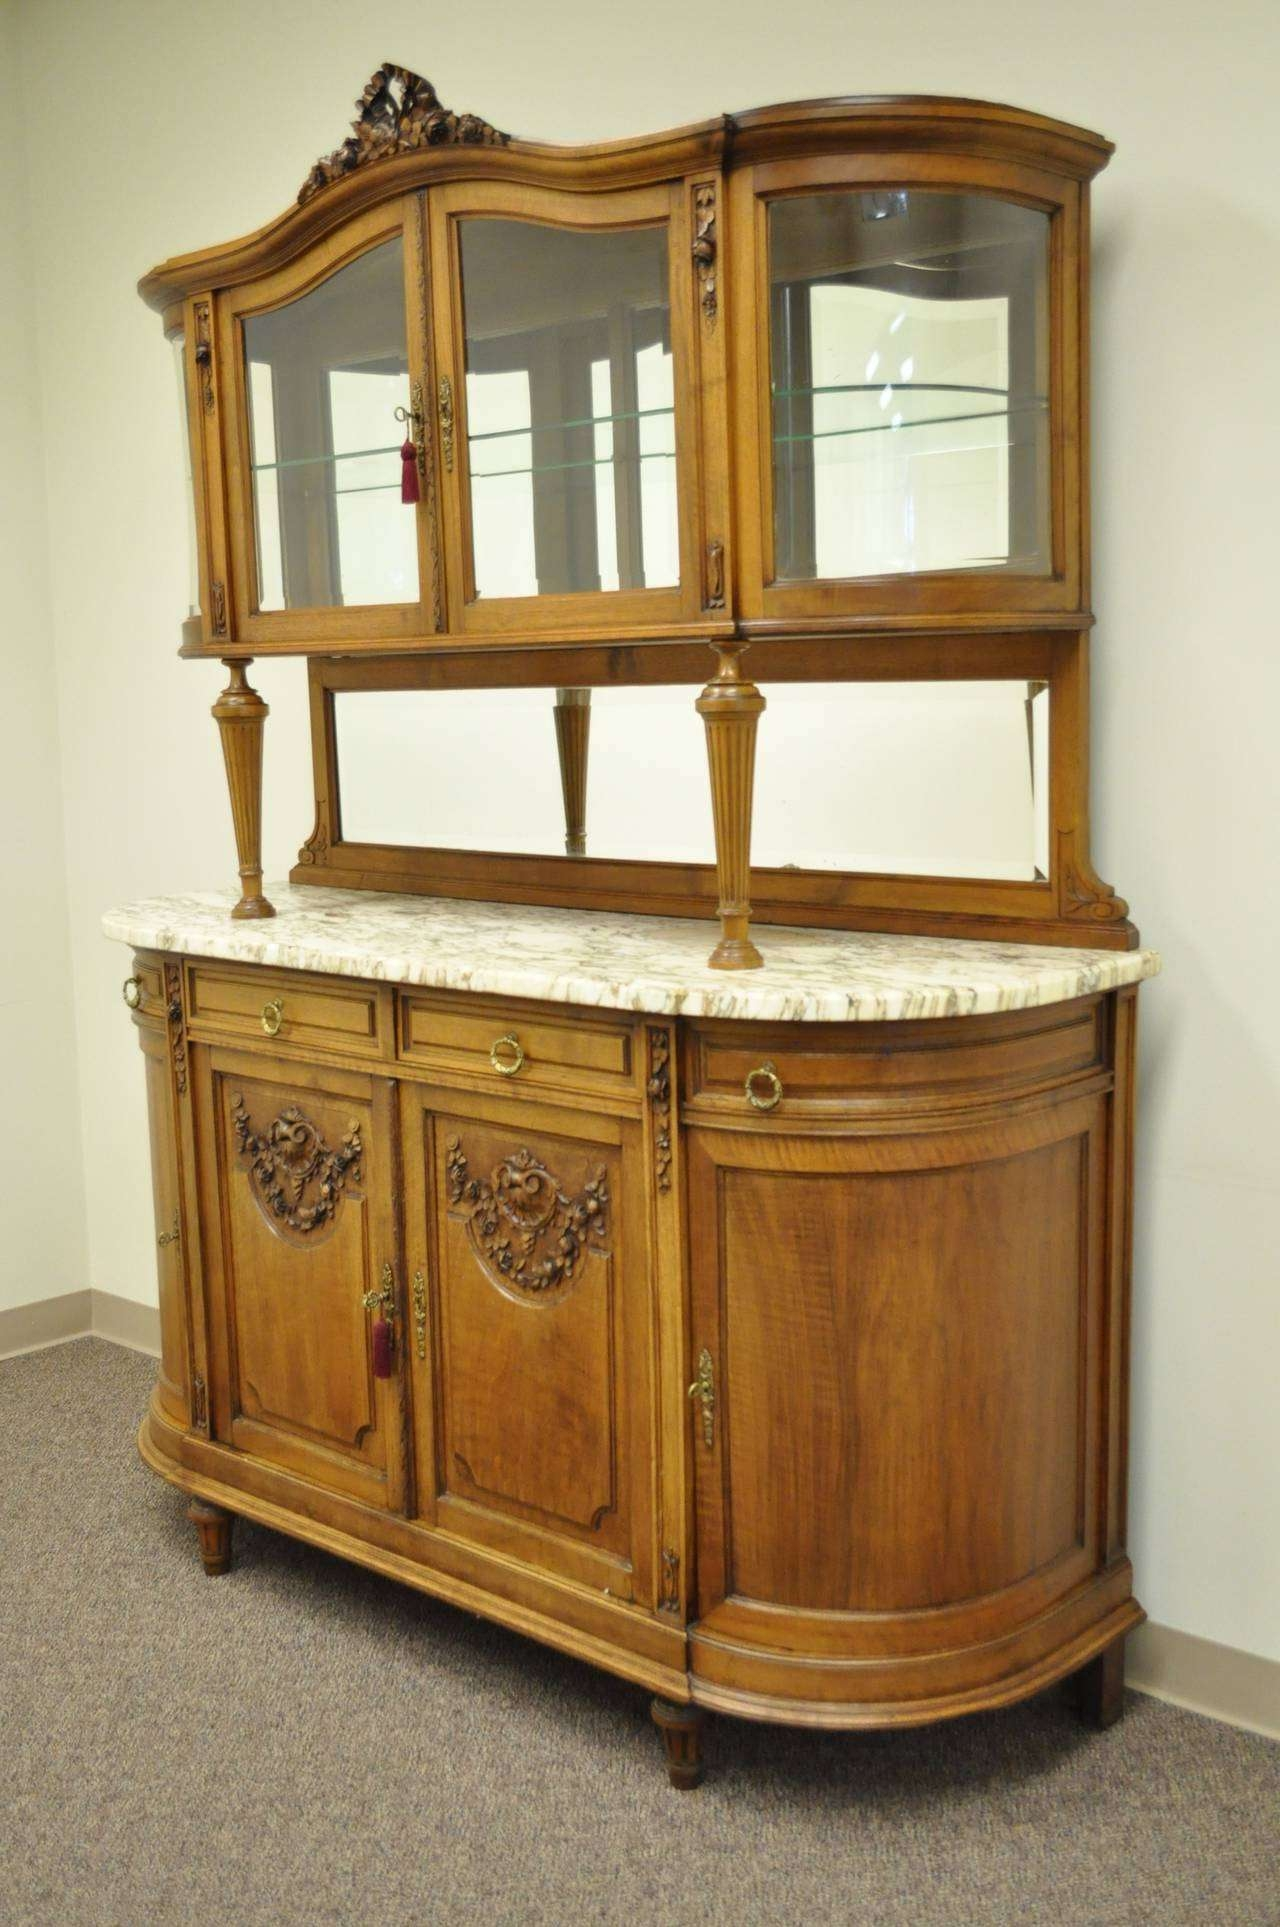 French Louis Xvi Style Marble Top Sideboard Or Curio Cabinet Inside Antique Marble Top Sideboards (View 8 of 20)